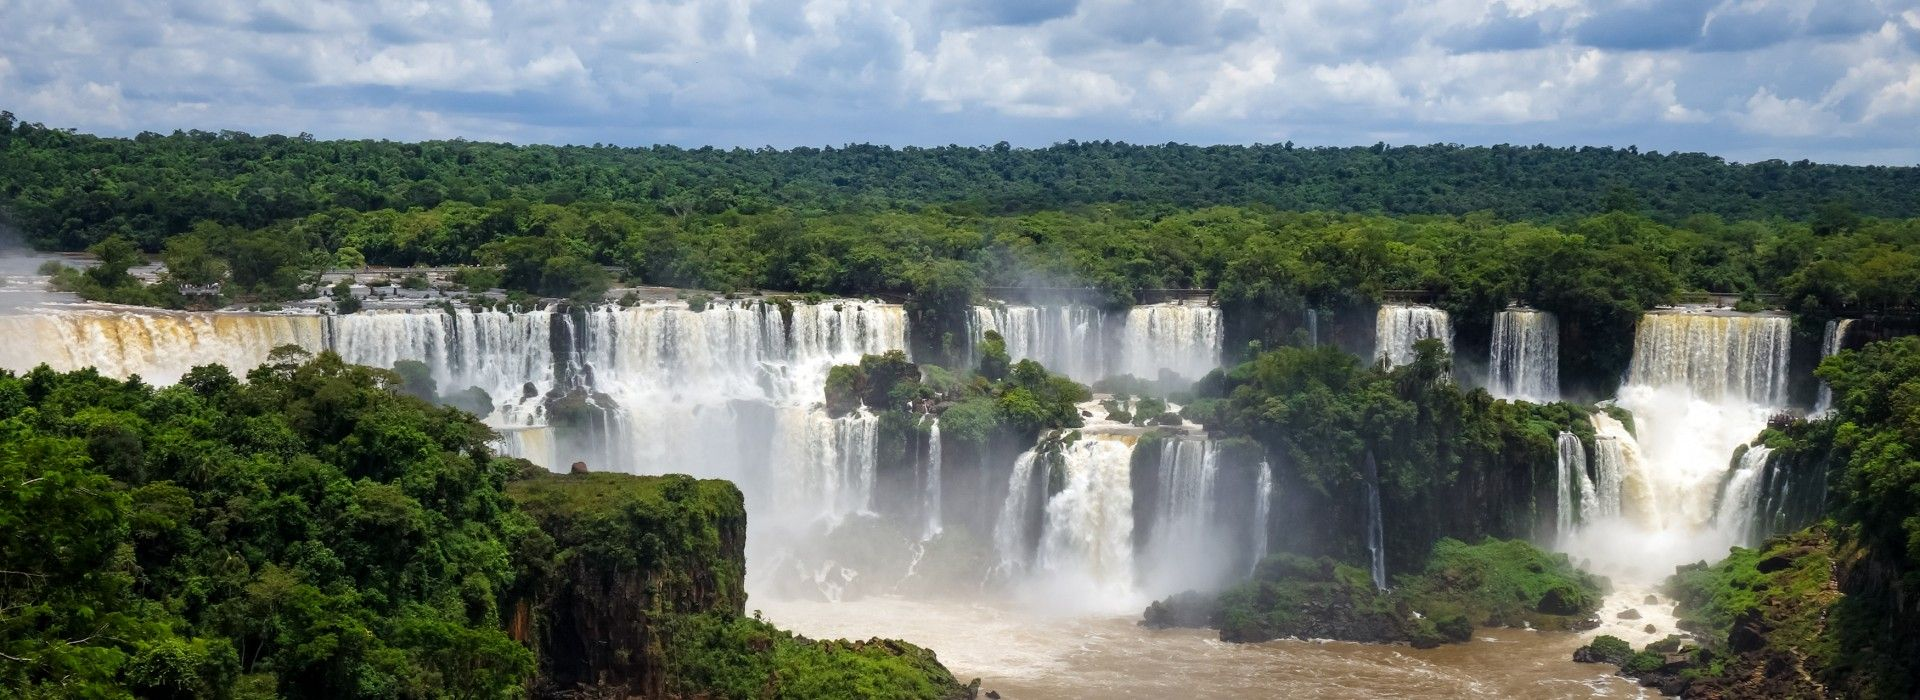 Iguazu Falls Tours and Holidays 2019/2020